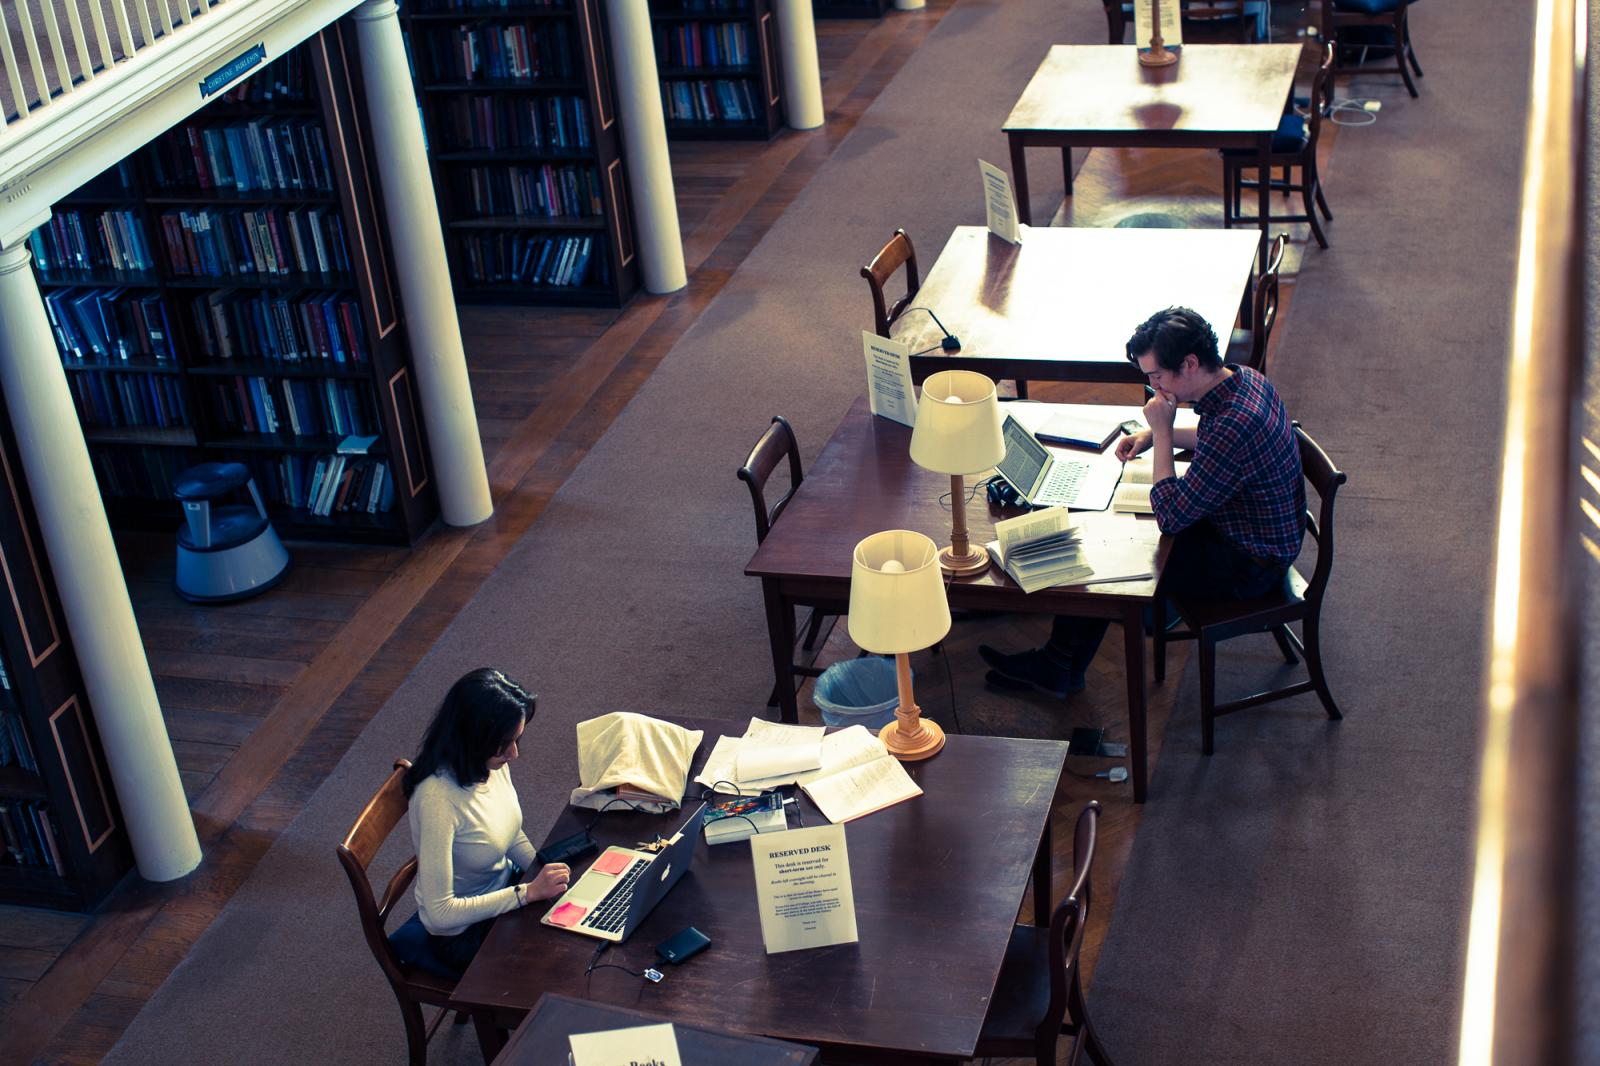 LMH Library (photo credit: Ben Robinson)